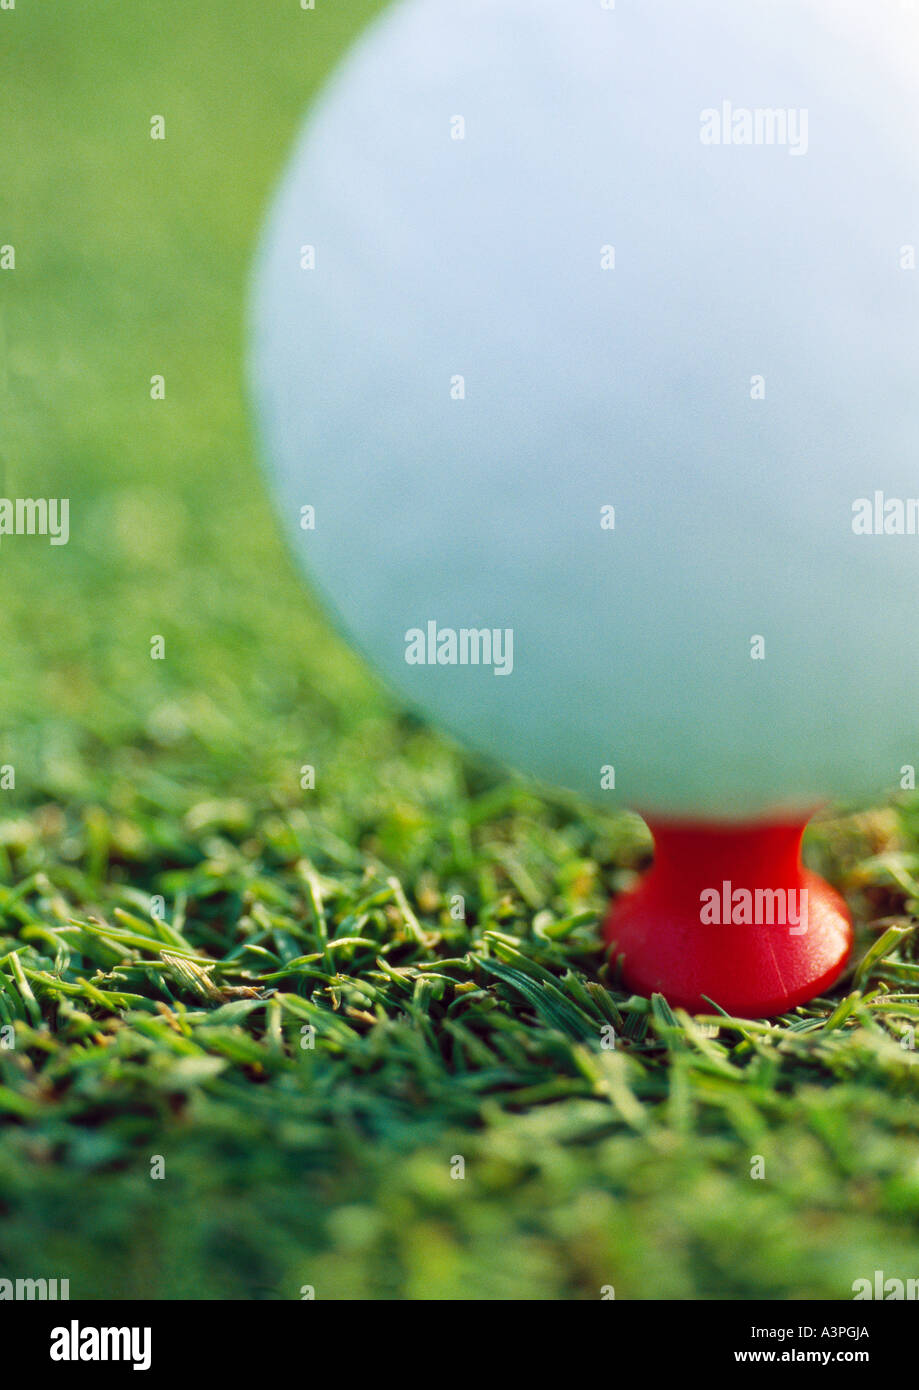 Teed golf ball, extreme close-up - Stock Image